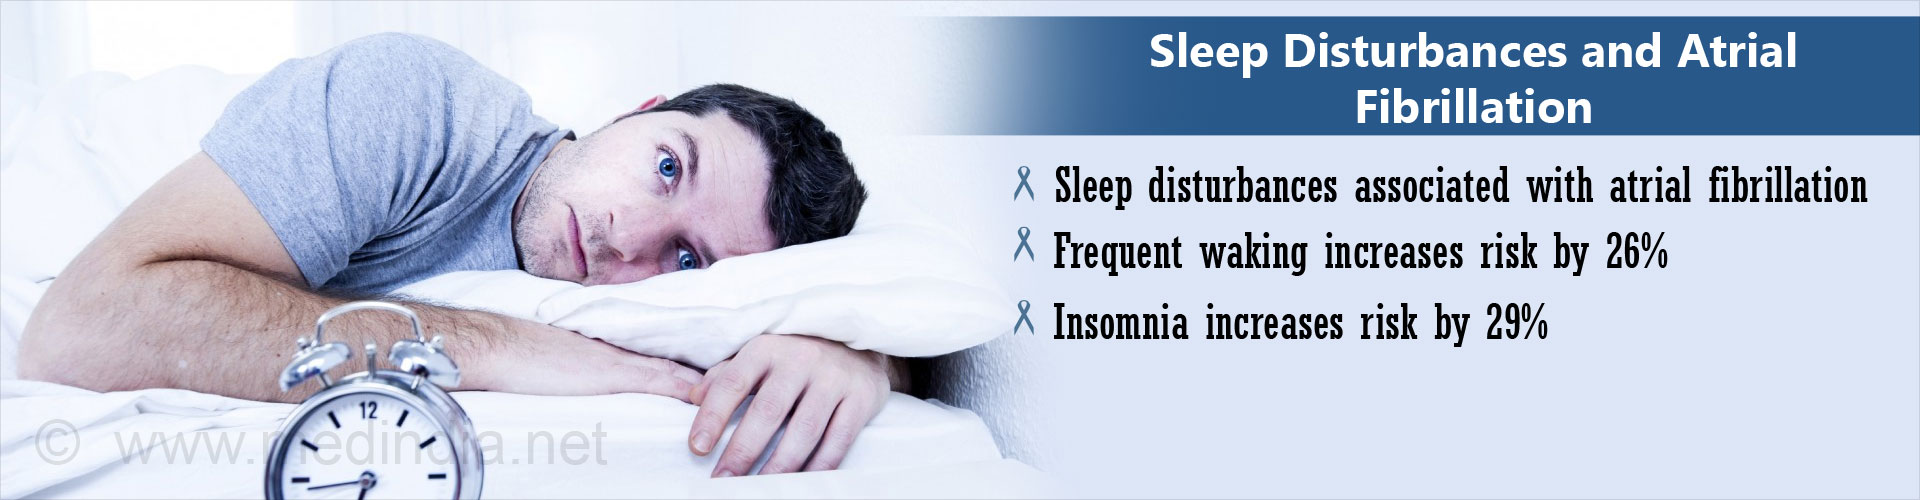 Insomnia & Sleep disturbances Increases the Risk of Rhythm Disorder of the heart called Atrial Fibrillation.